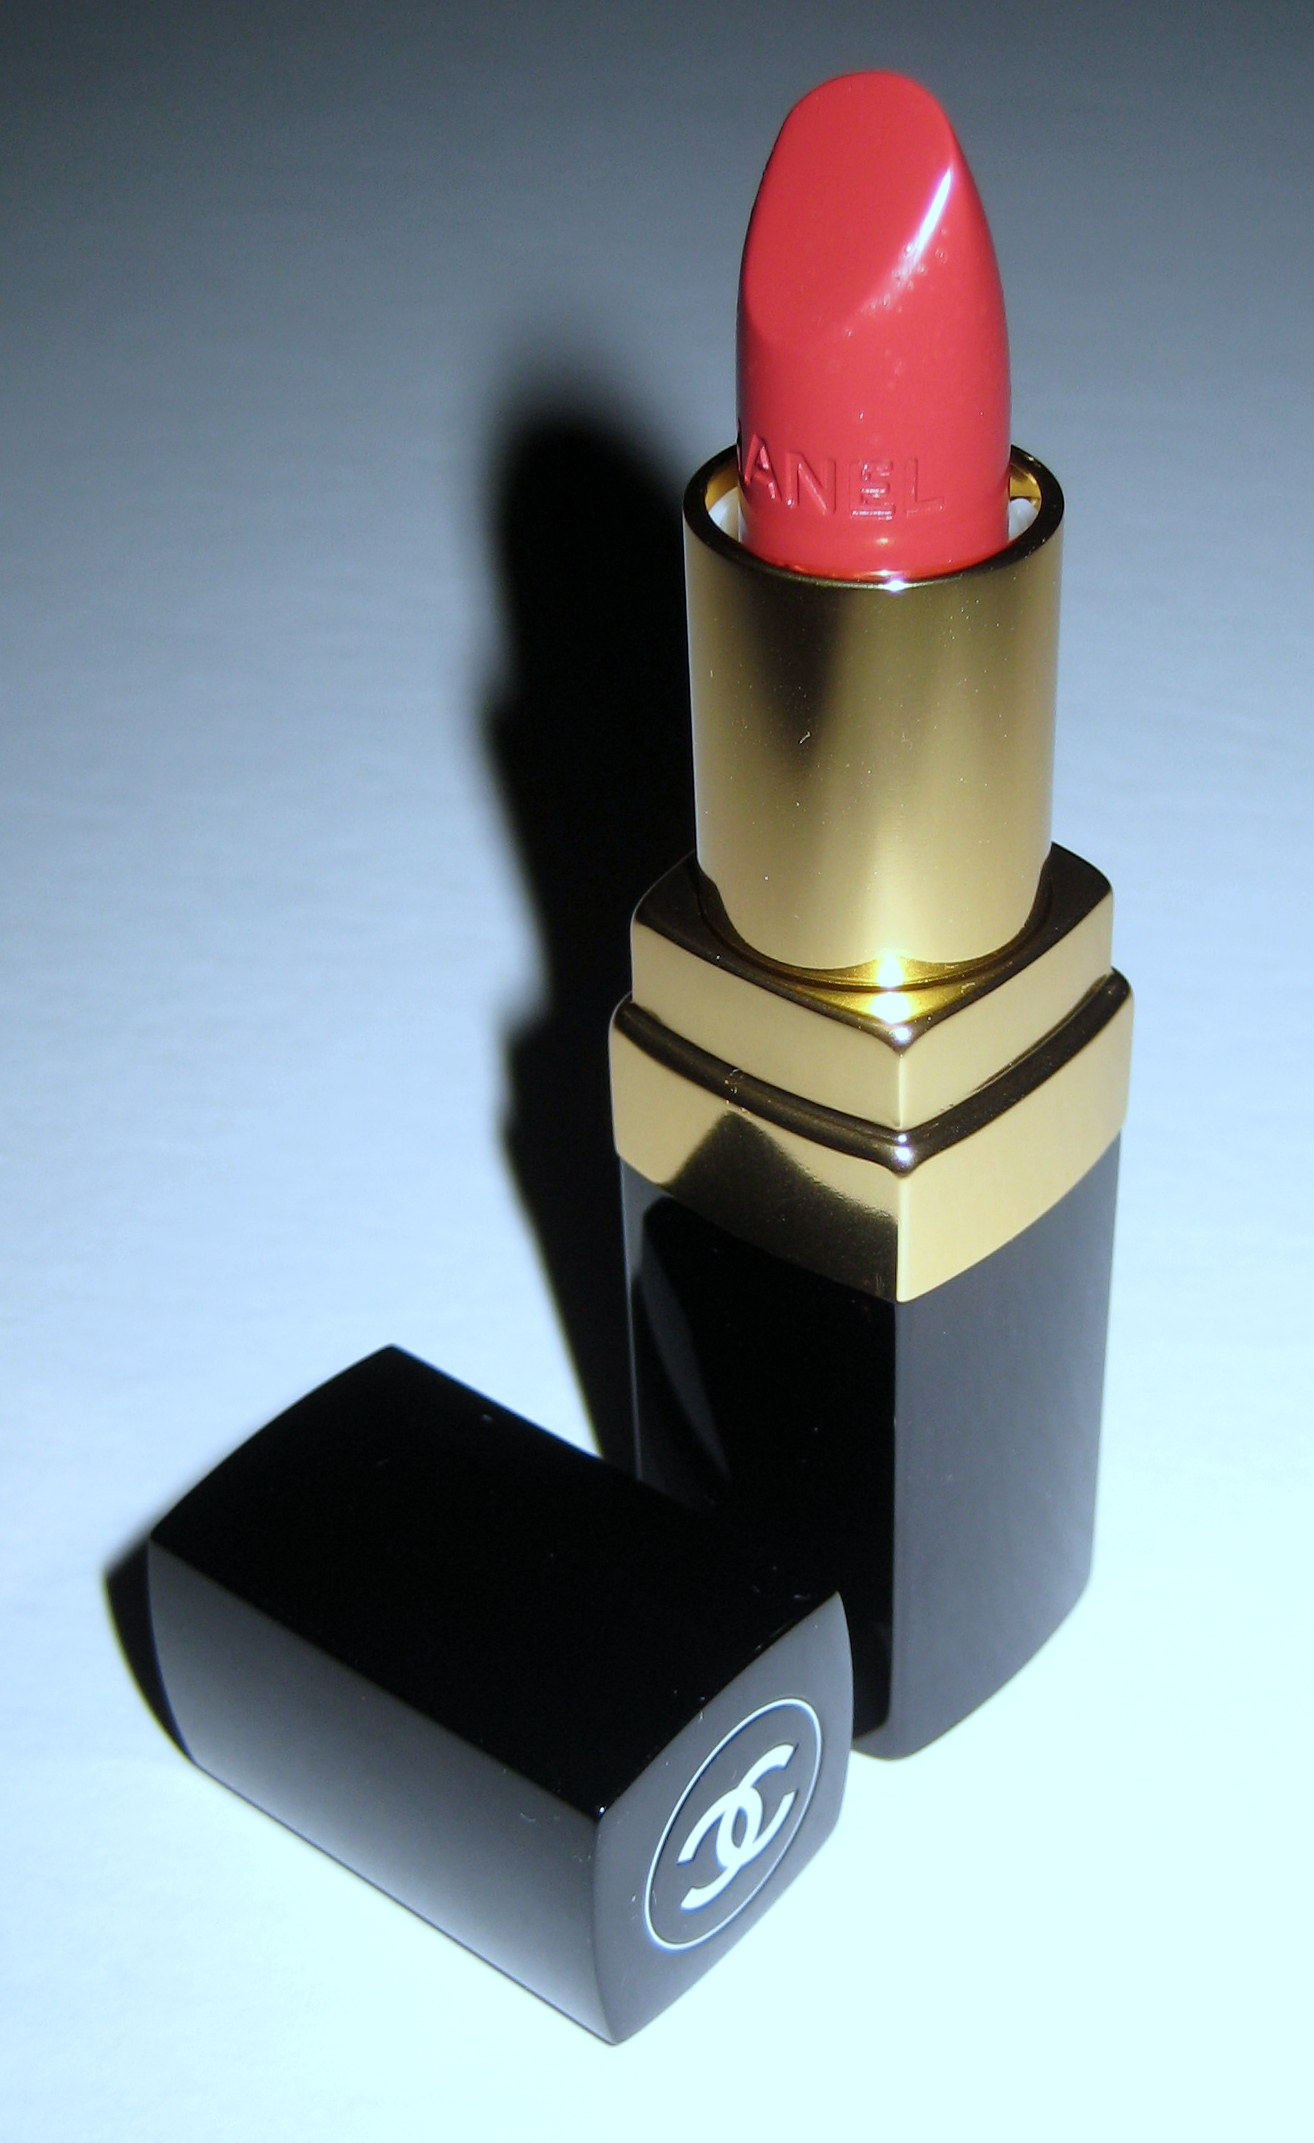 Chanel Rouge Coco in Vendome, open tube